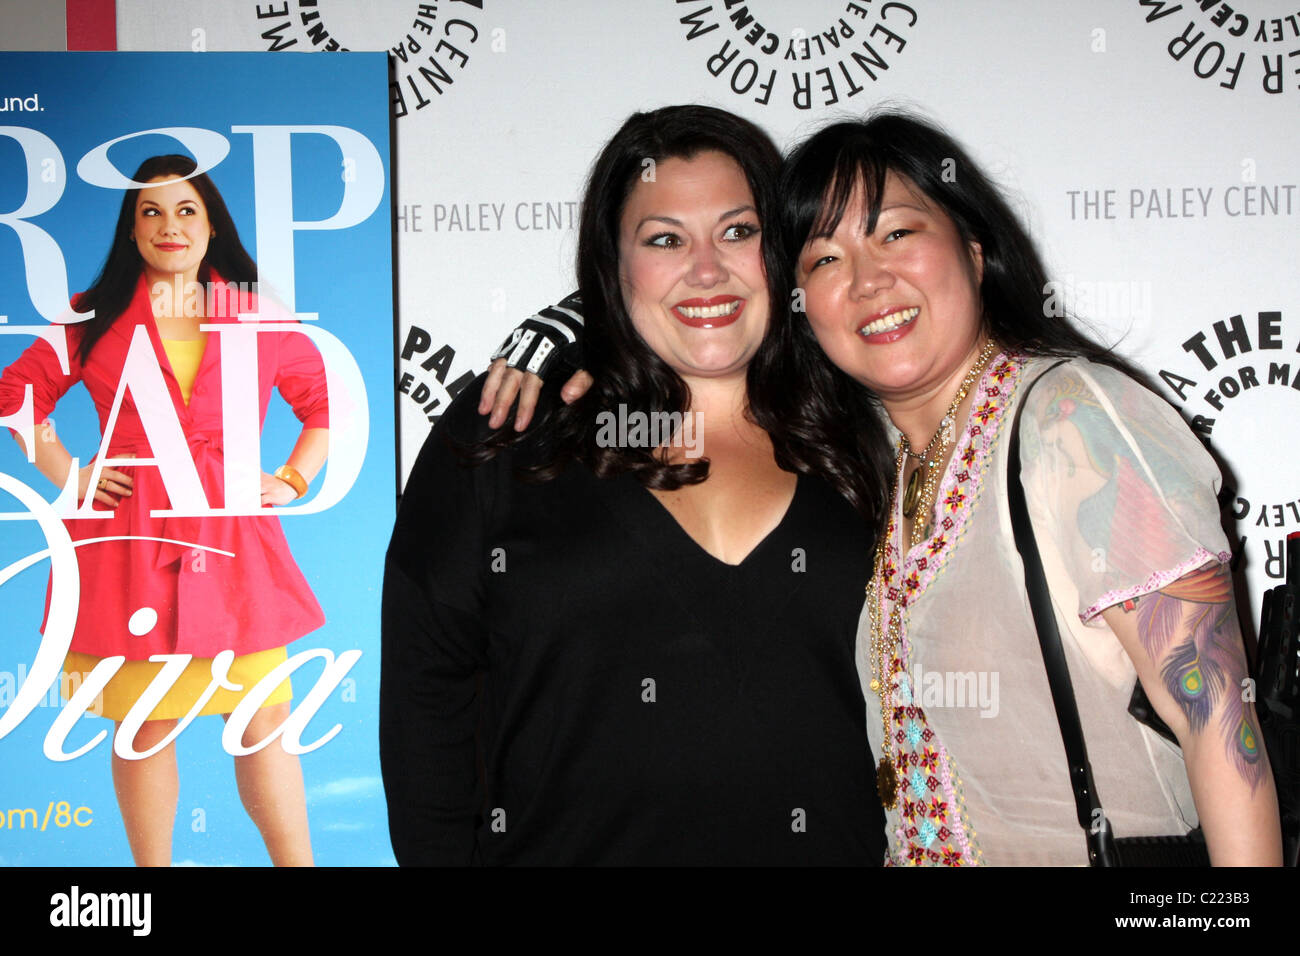 Brooke elliott and margaret cho drop dead diva season 1 finale at stock photo royalty free - Drop dead diva season 1 ...